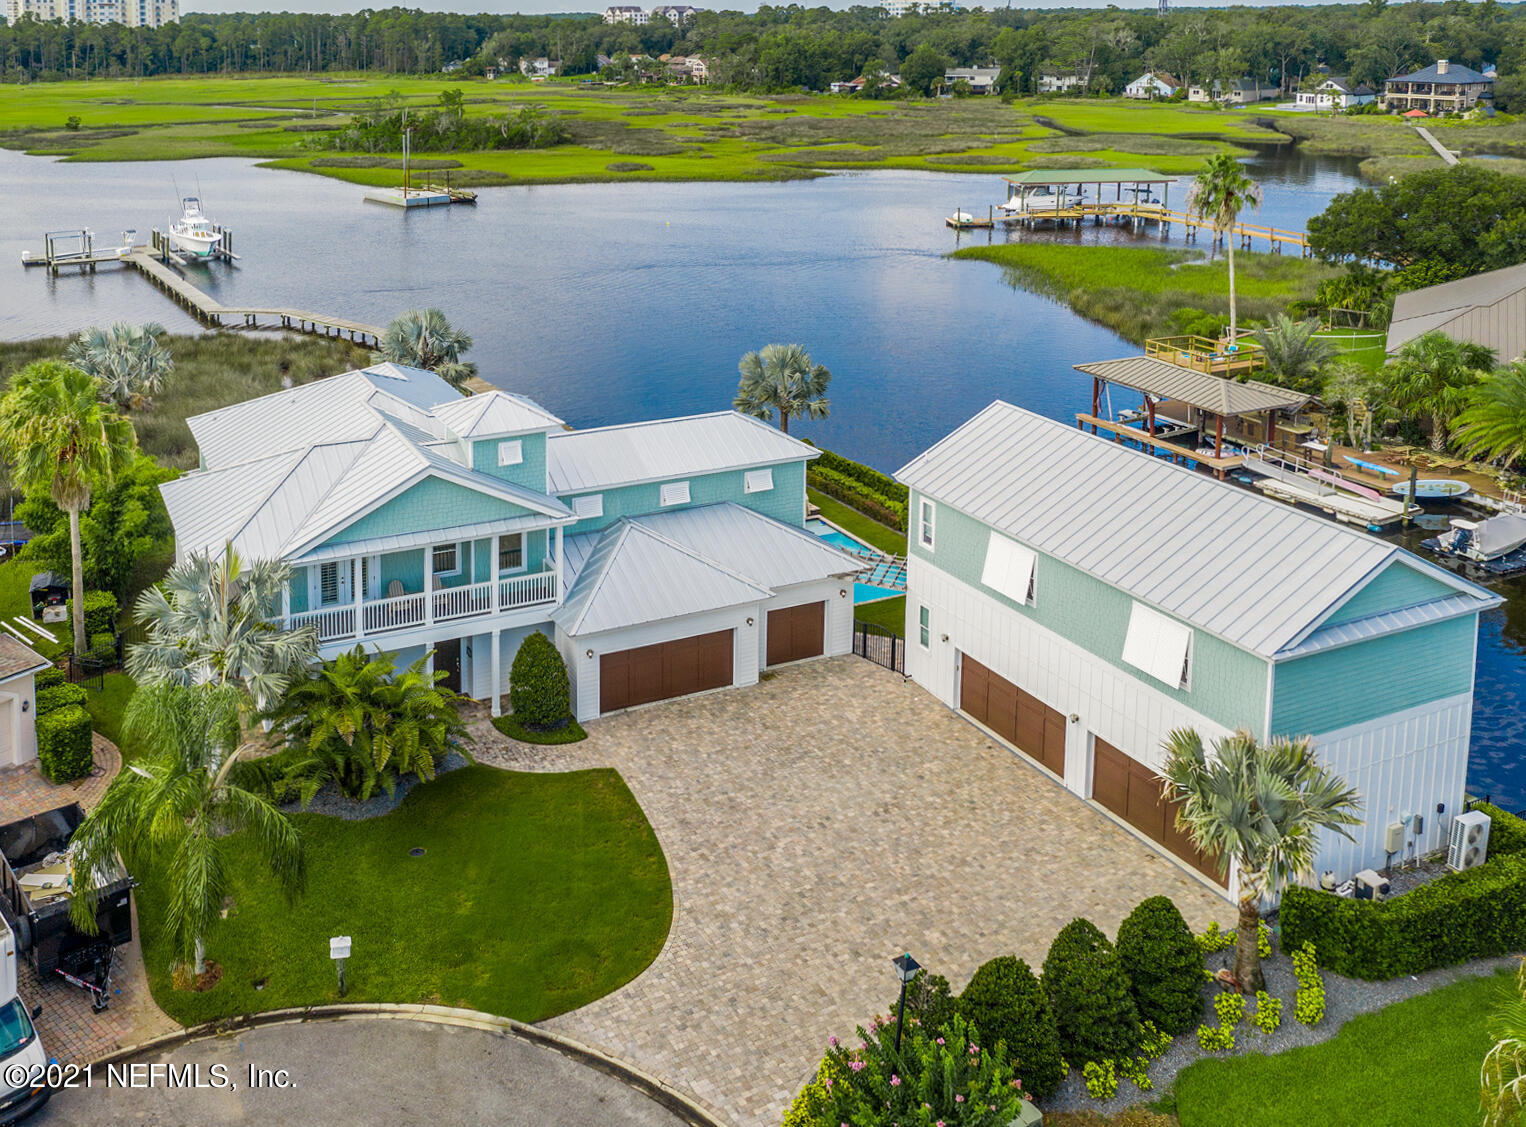 Enjoy Luxury & Location you deserve from Sunrise To Sunset in this Stunning Waterfront Masterpiece. This Warm & Welcoming Home Features Tons of Upgrades including a Gourmet Kitchen, European Oak Hardwood Floors, & Amazing Finishes with Coastal Design & Charm, centered on Functionality & Quality Craftsmanship. Vacation Year-Round with an Incredible Coastal Lifestyle with Professional Landscaping. Entertain from your Summer Kitchen Overlooking the Mediterranean Inspired Heated Pool & Spa, Private Beach Area & Fire Pit. This One-Of-A-Kind Resort-Style Oasis includes Top Amenities like Deep Water Access & Docking for your Largest Yacht, Dream Space for your Car Collection in the 7-Car Garage Layout & a Professionally Equipped Gym. Must See Comprehensive 'Amenities List' to Truly Appreciate.